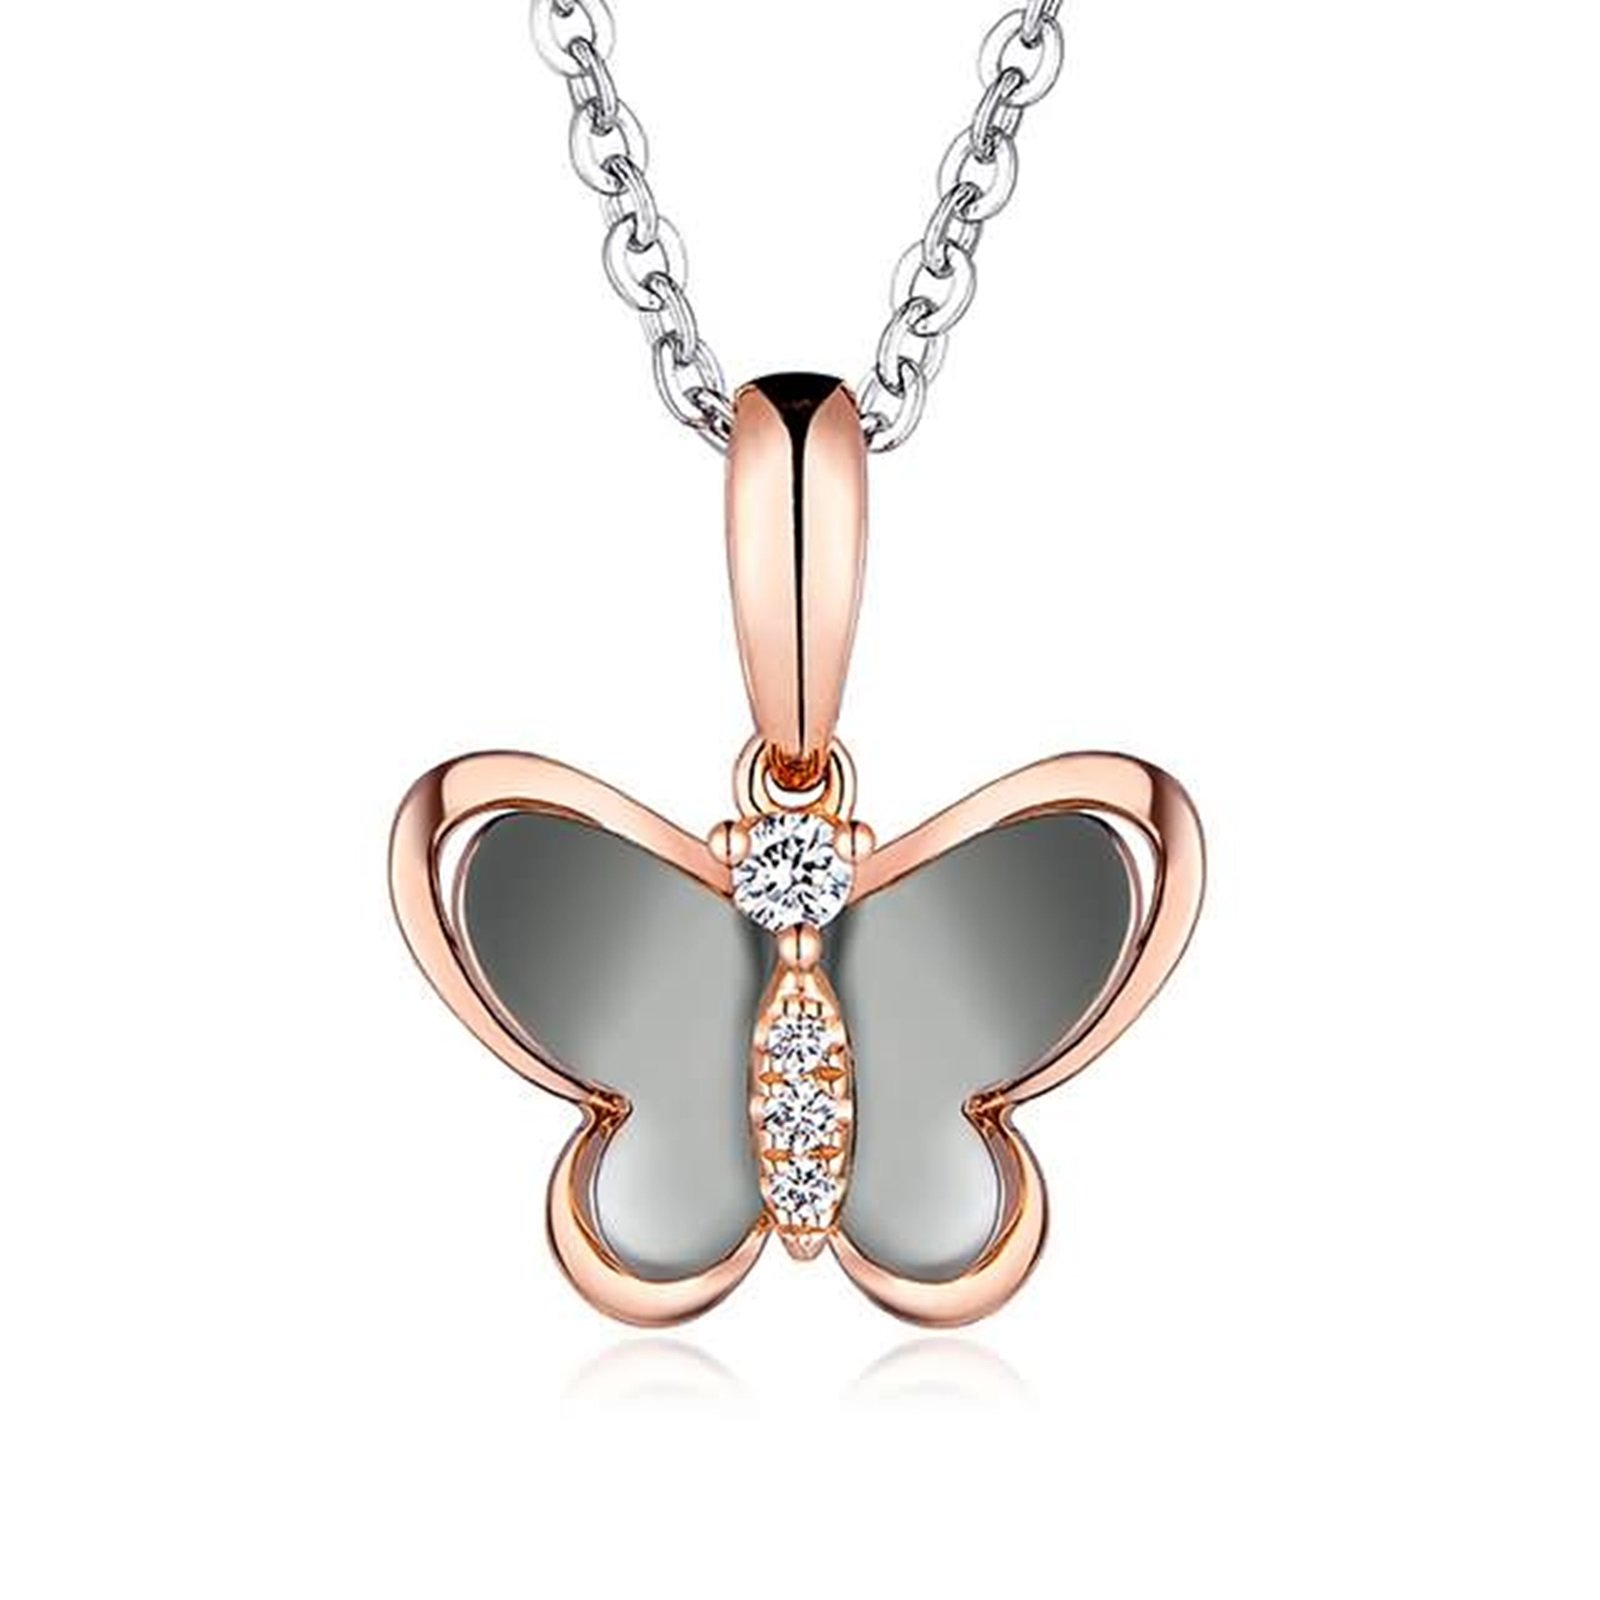 Adisaer 18k(750) Rose Gold Women Necklace 0.8g Butterfly Pendant Round Diamond Wedding Necklace